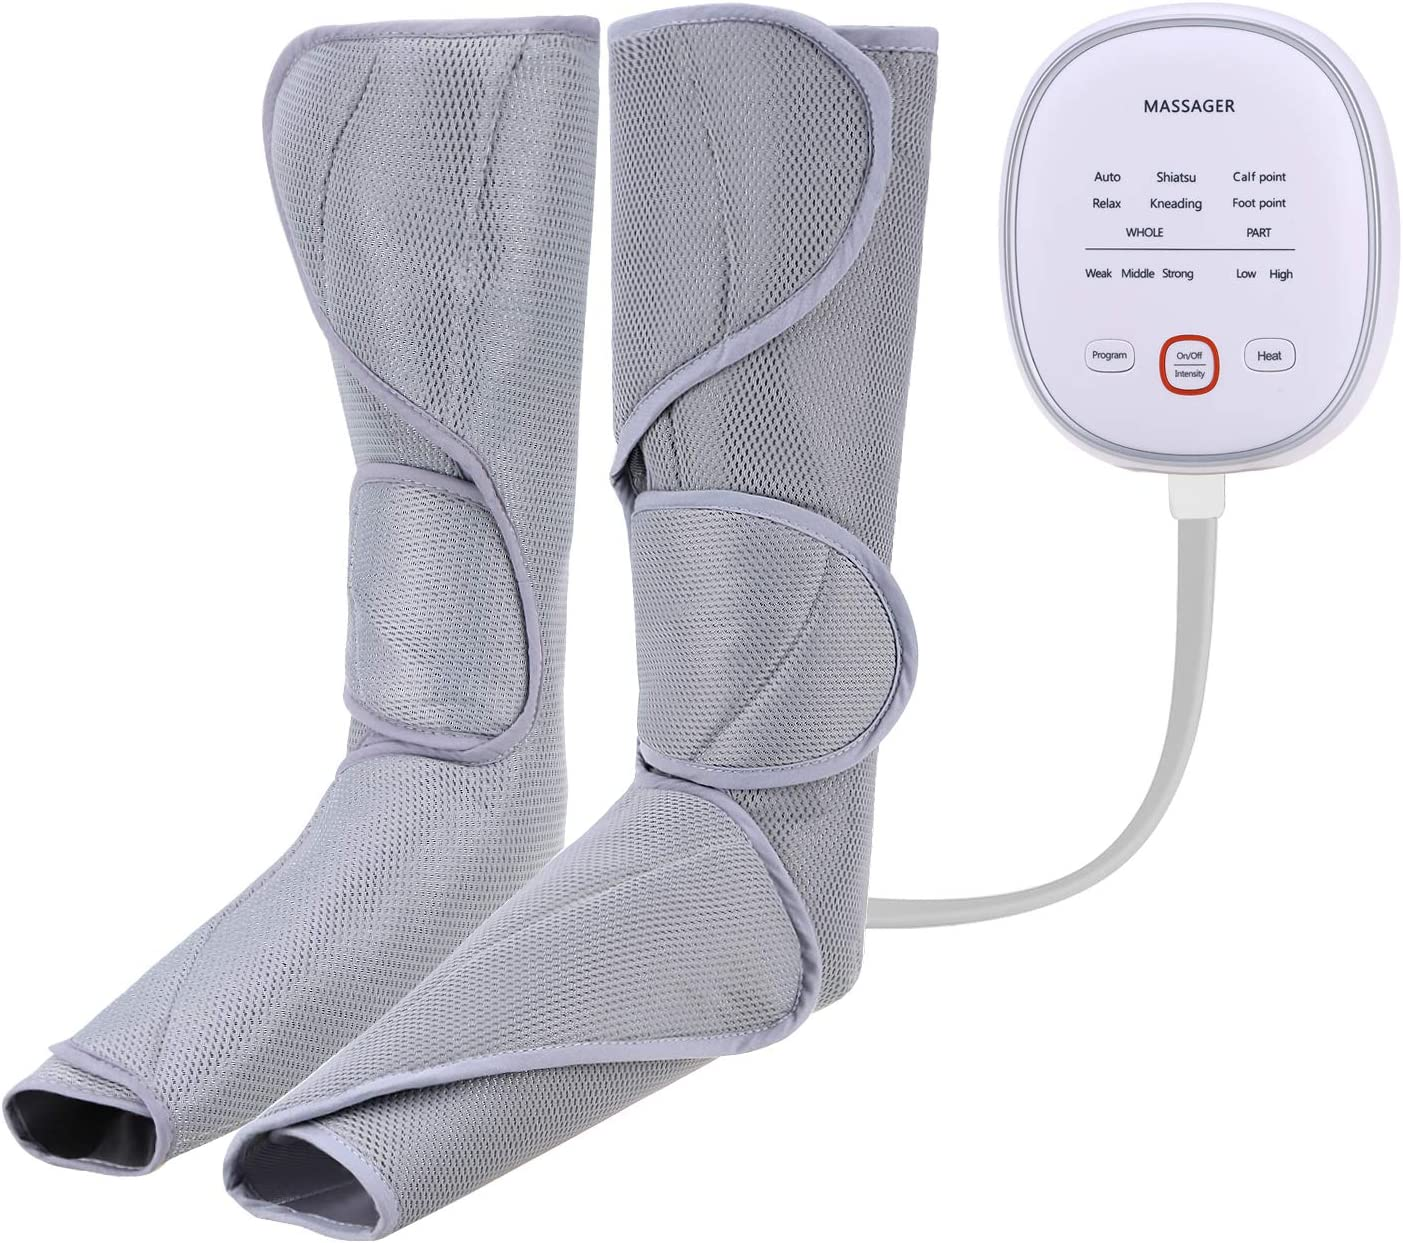 KESITIS Heated Leg Massager Air Compression for Foot and Calf Circulation Massage with Handheld Controller 3 Intensities 2 Modes 2 Temperatures with 2 Extensions